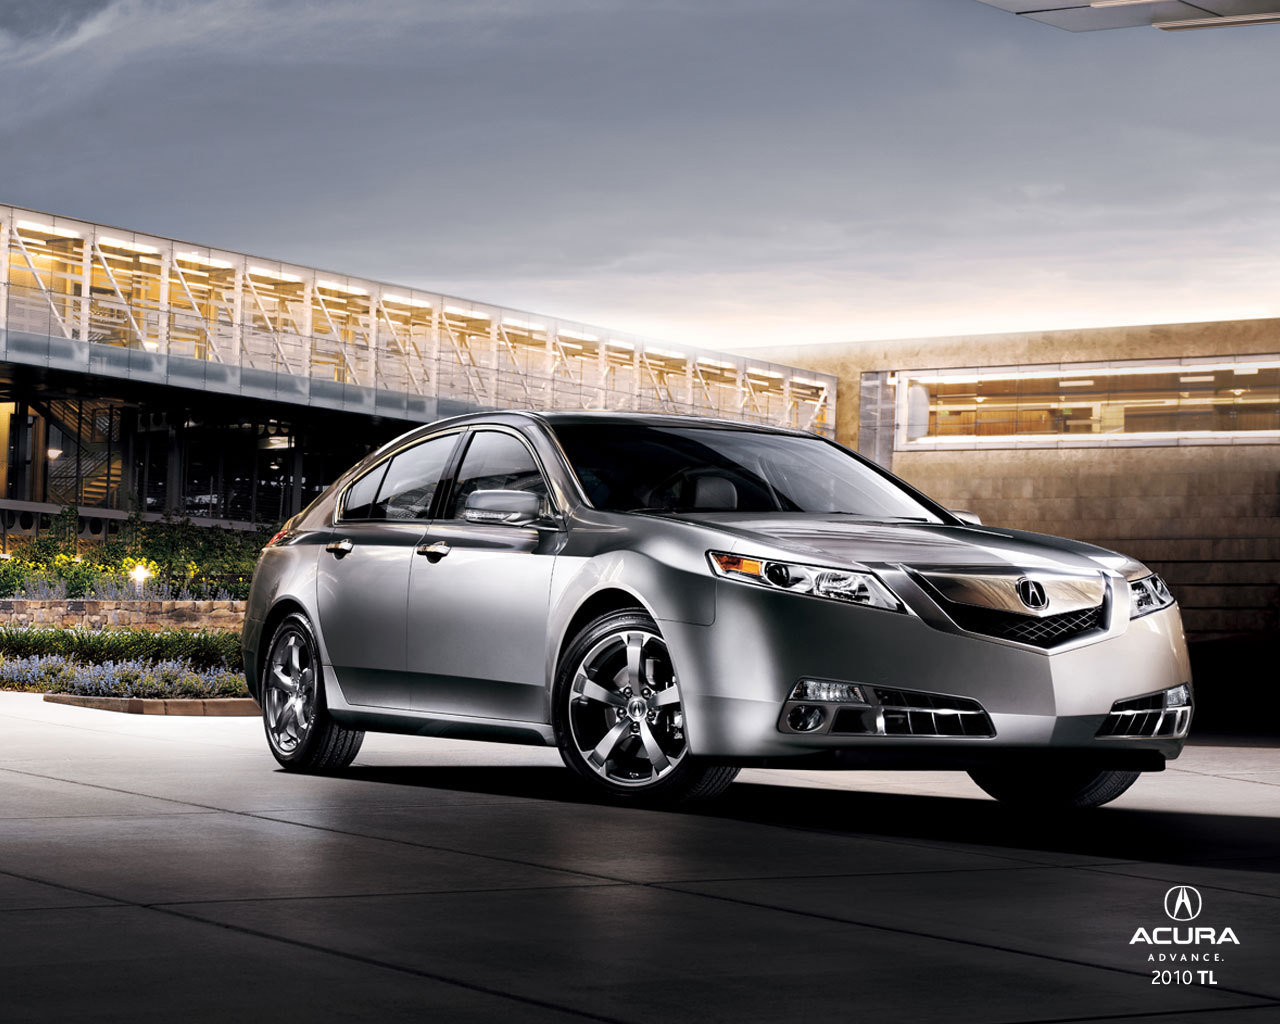 2010 acura tl picture 326233 car review top speed. Black Bedroom Furniture Sets. Home Design Ideas